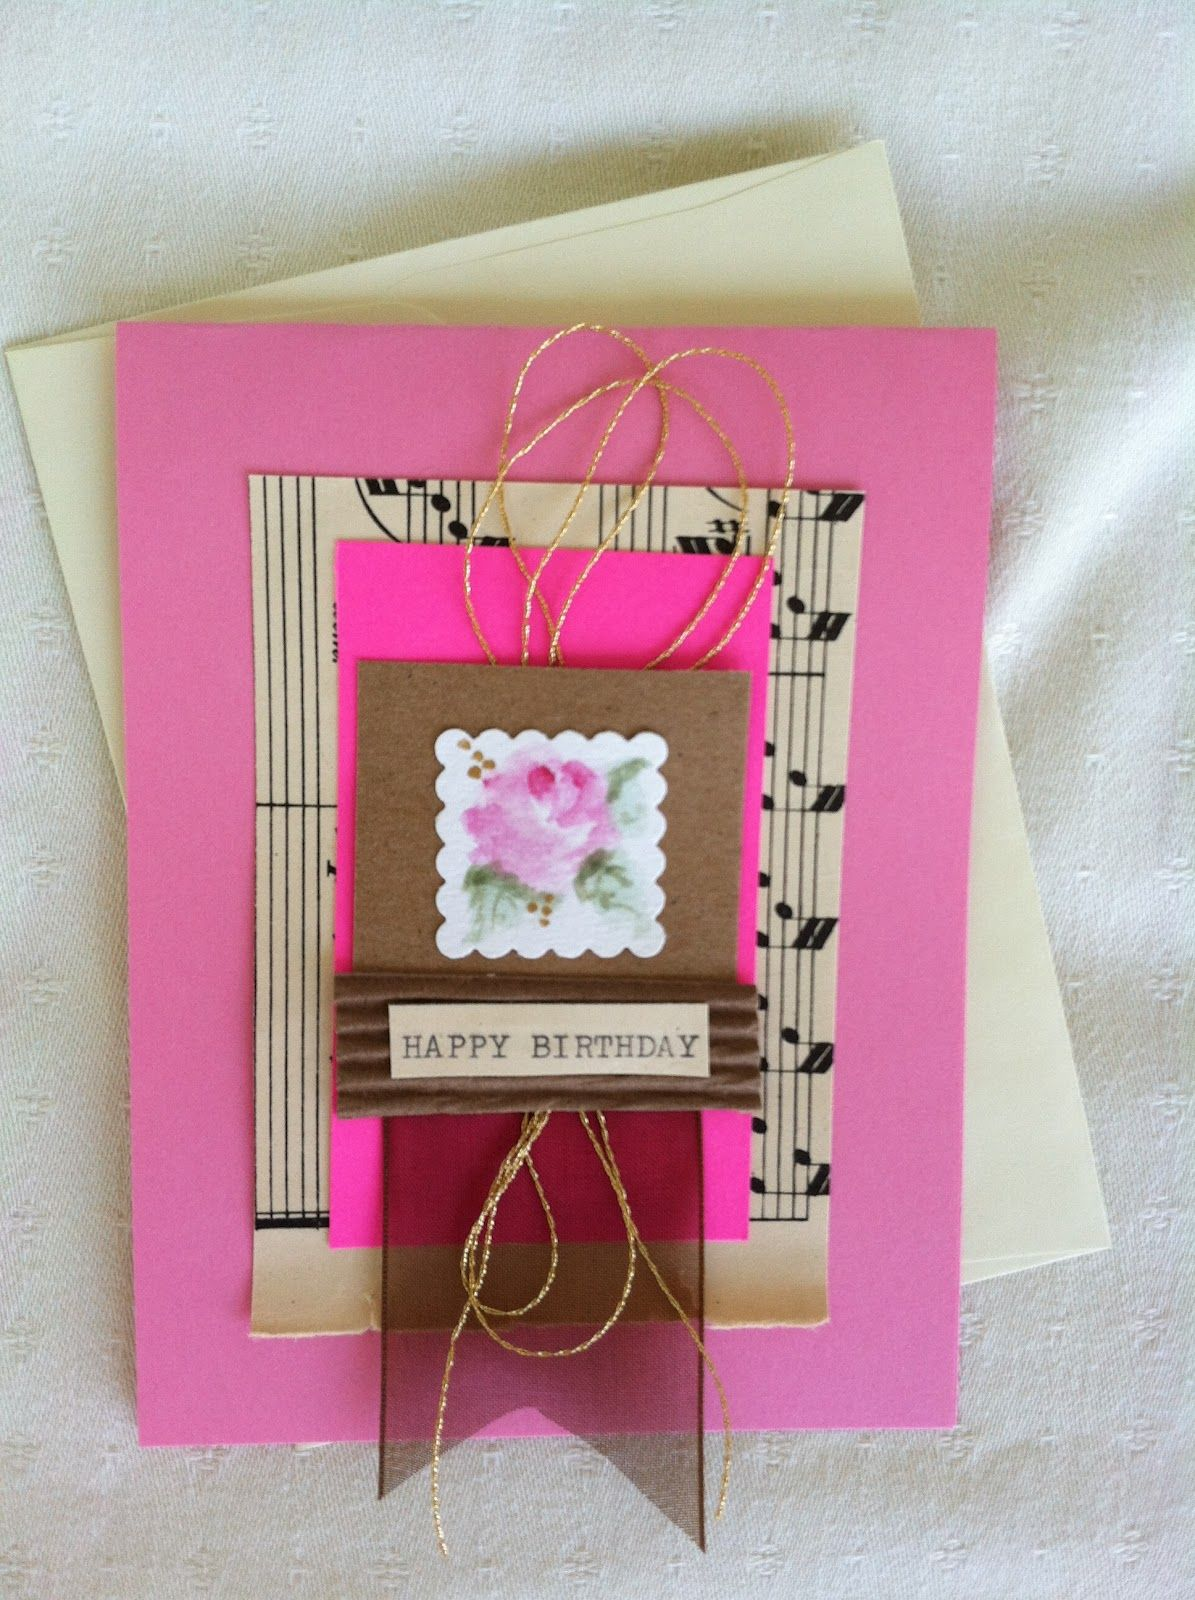 Handmade Greeting Cards For An Extra Special Person – Handmade Greeting Cards for Birthday